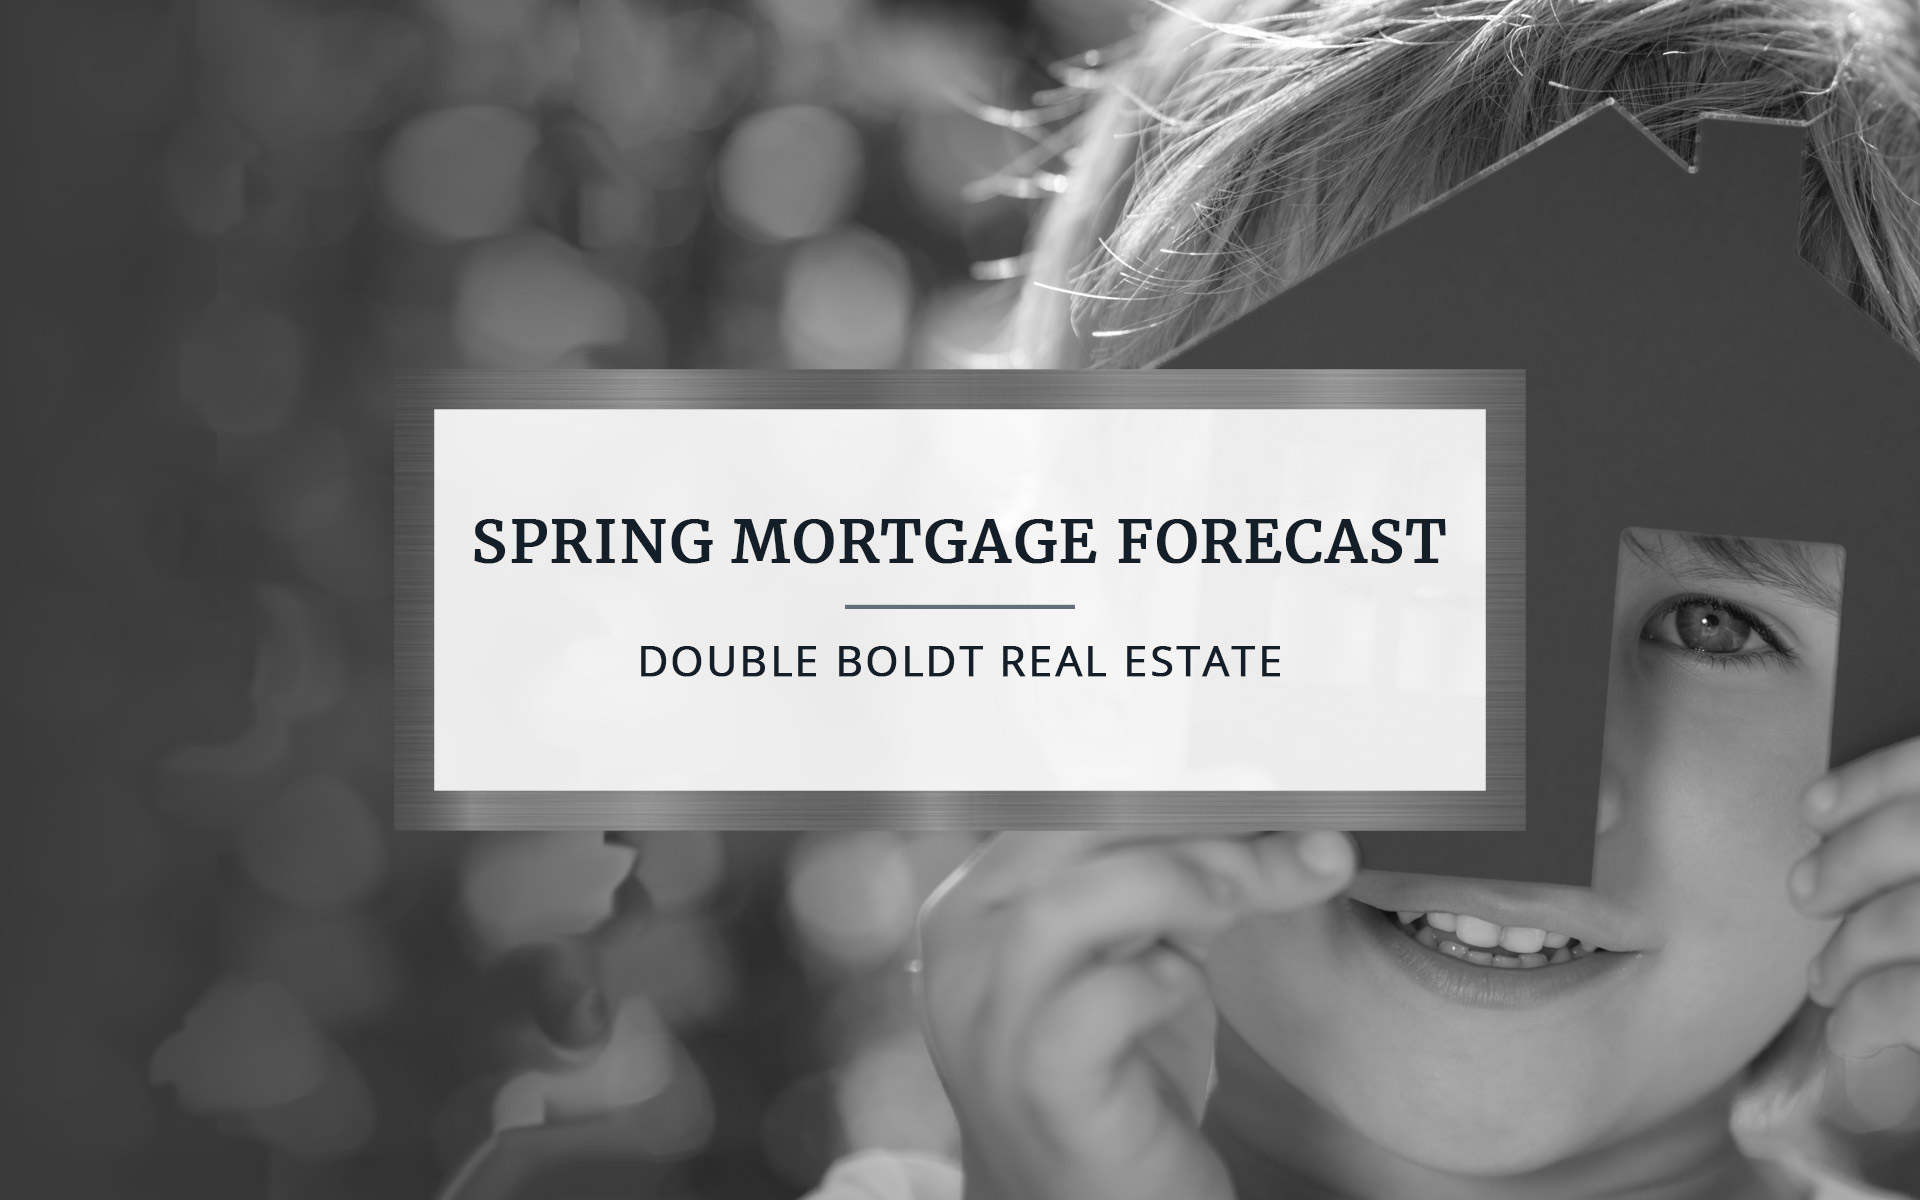 Spring Mortgage Forecast